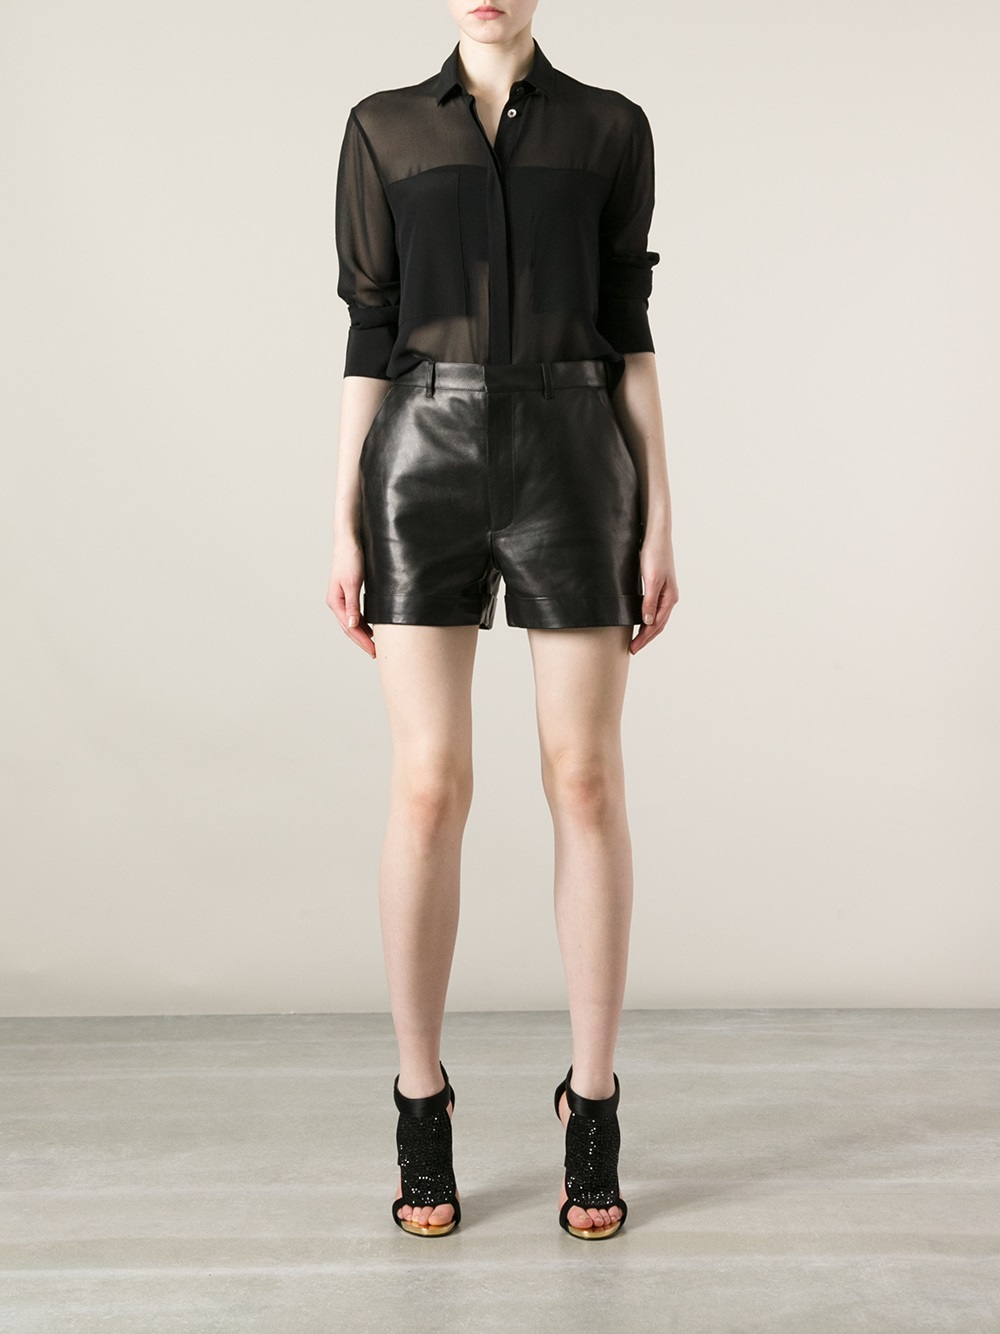 Saint Laurent Leather Shorts - Luisa World - Farfetch.com